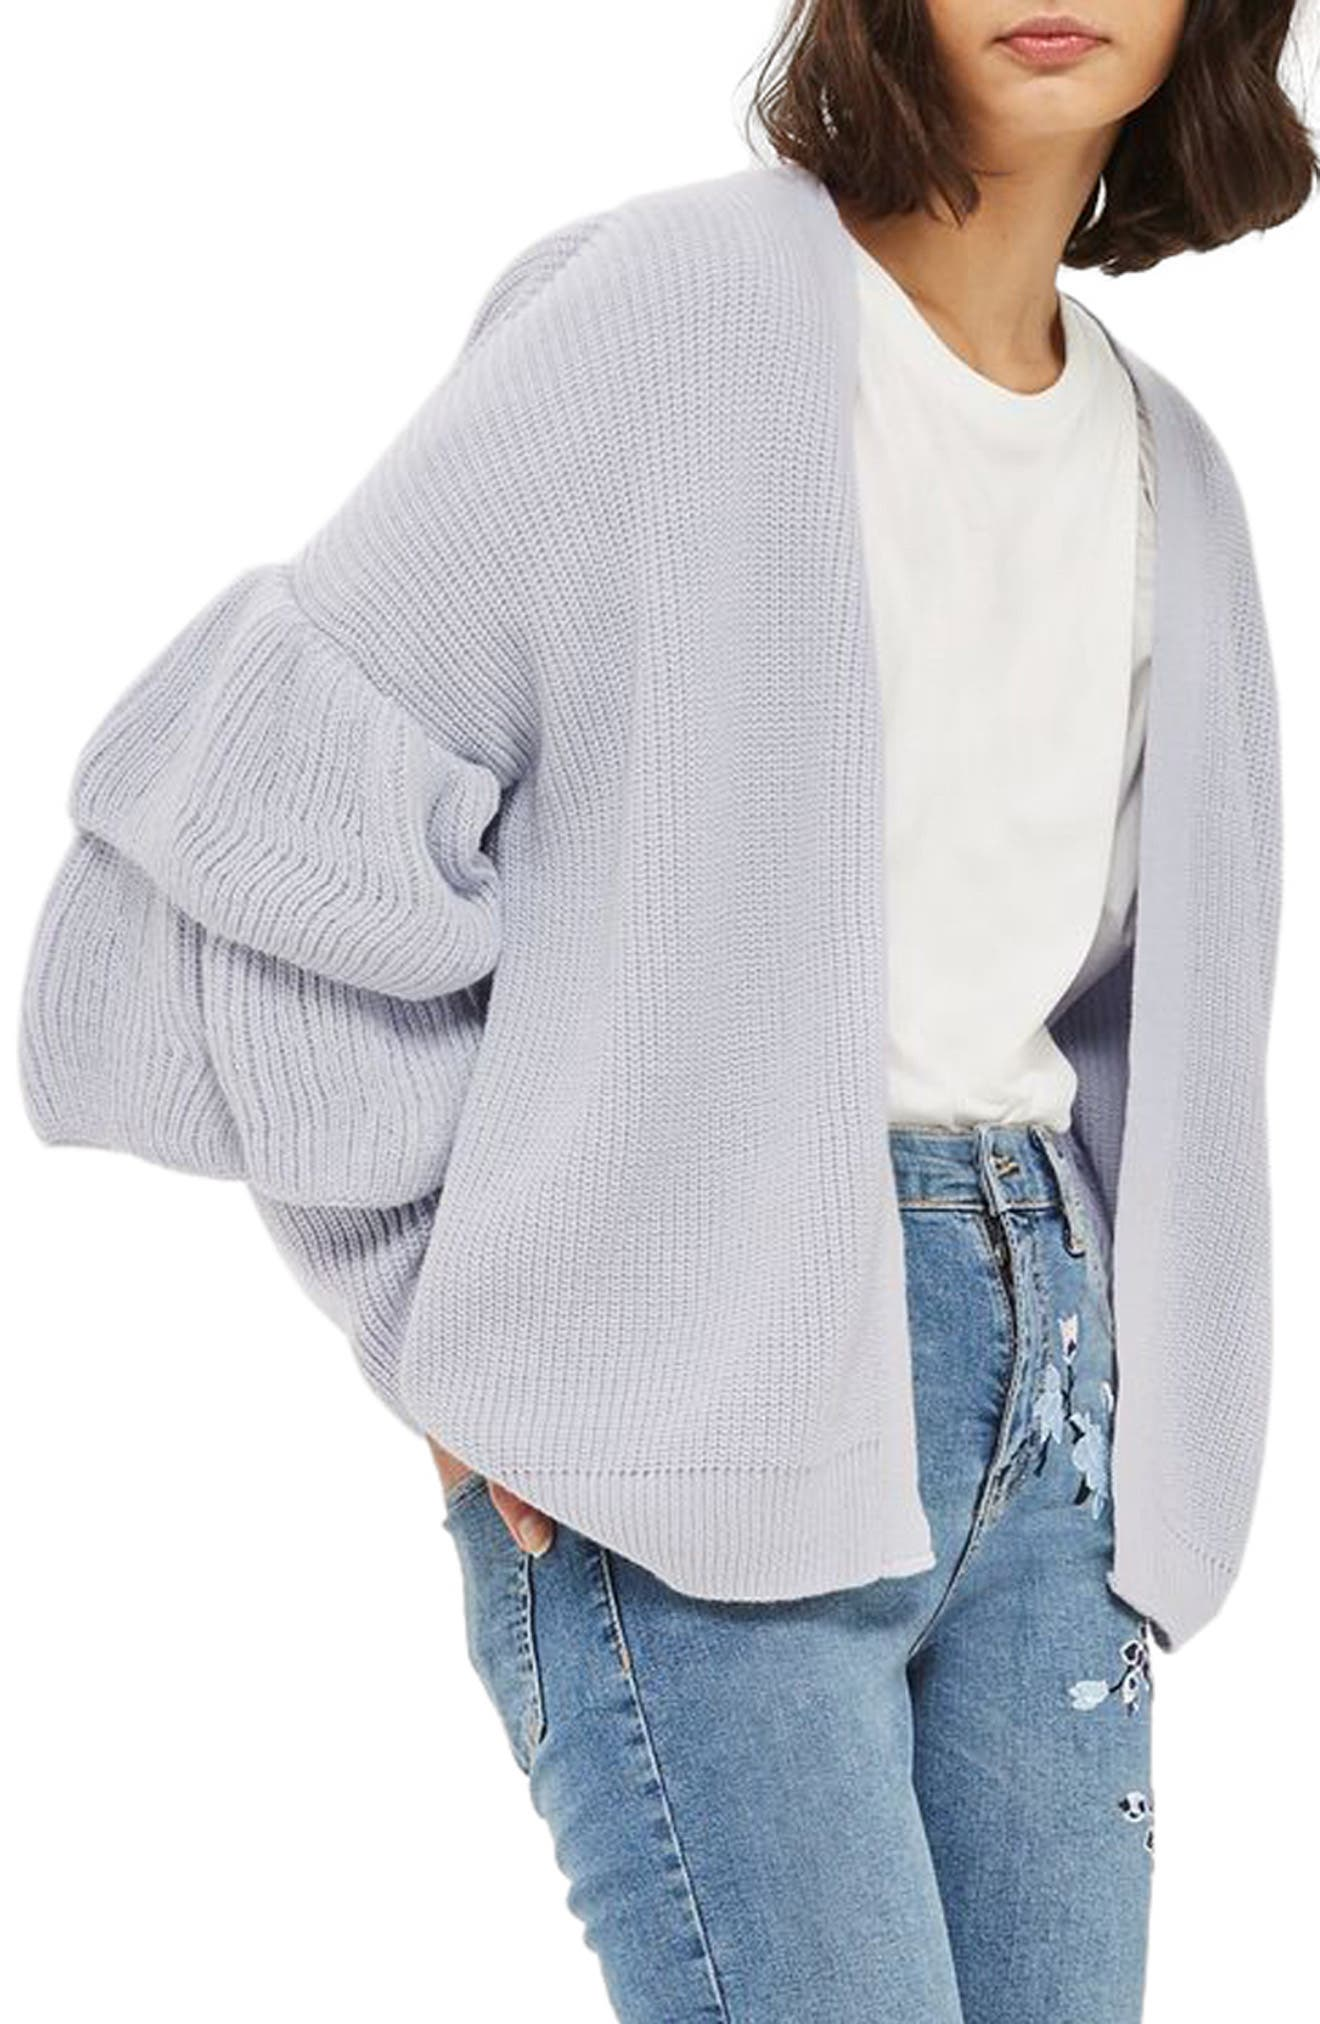 Alternate Image 1 Selected - Topshop Layered Ruffle Sleeve Cardigan